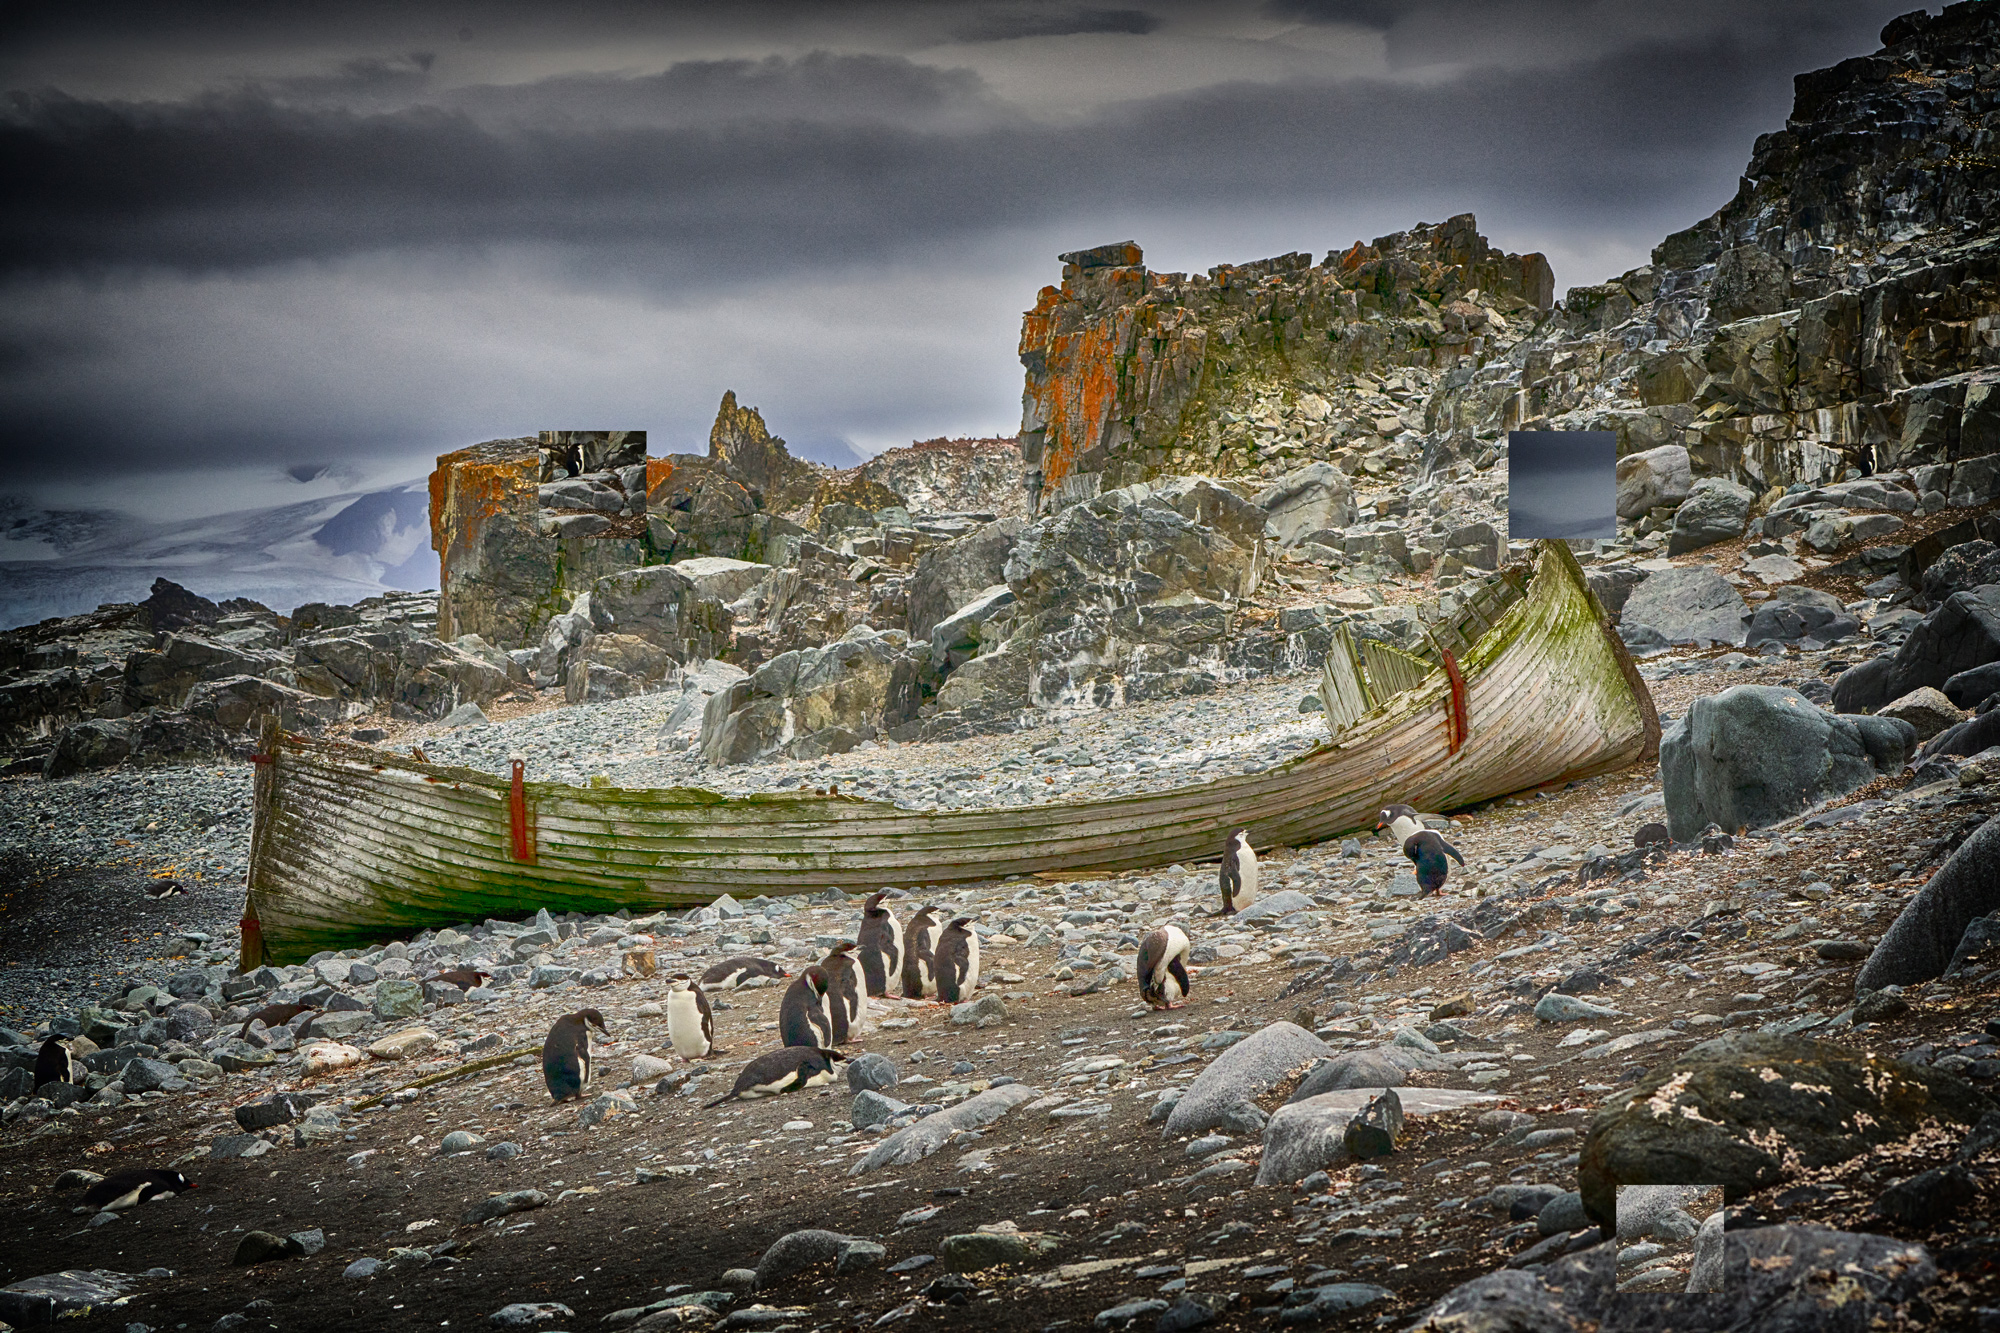 Old whale boat and penguins